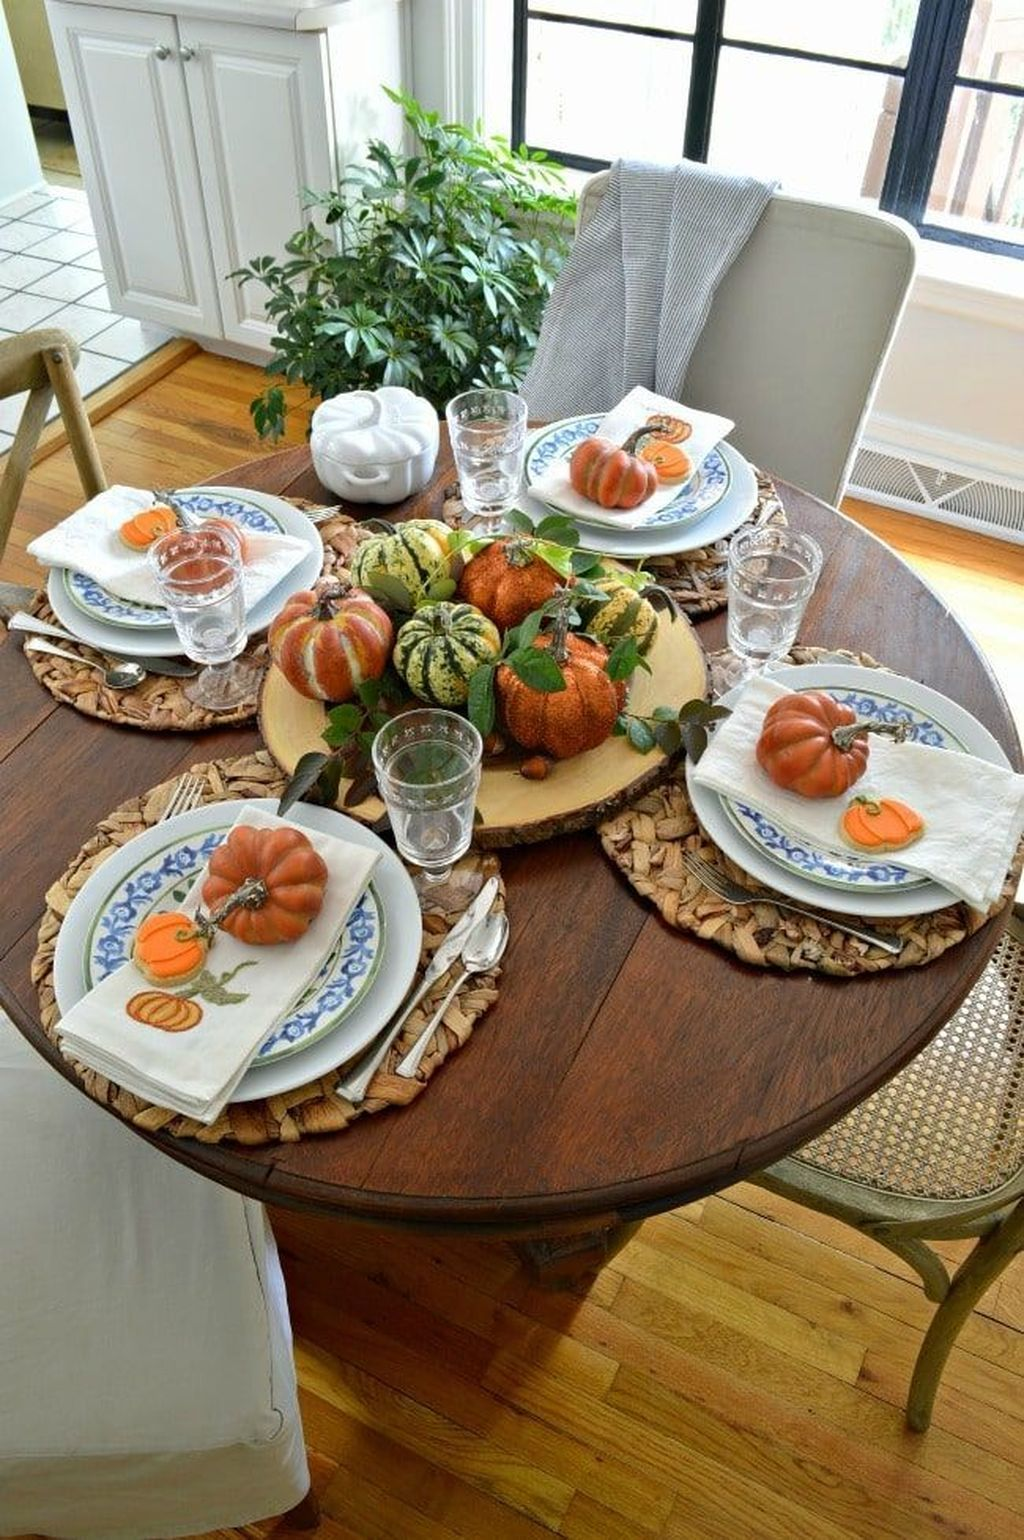 34 Awesome Fall Table Decorations Ideas You Should Apply ...